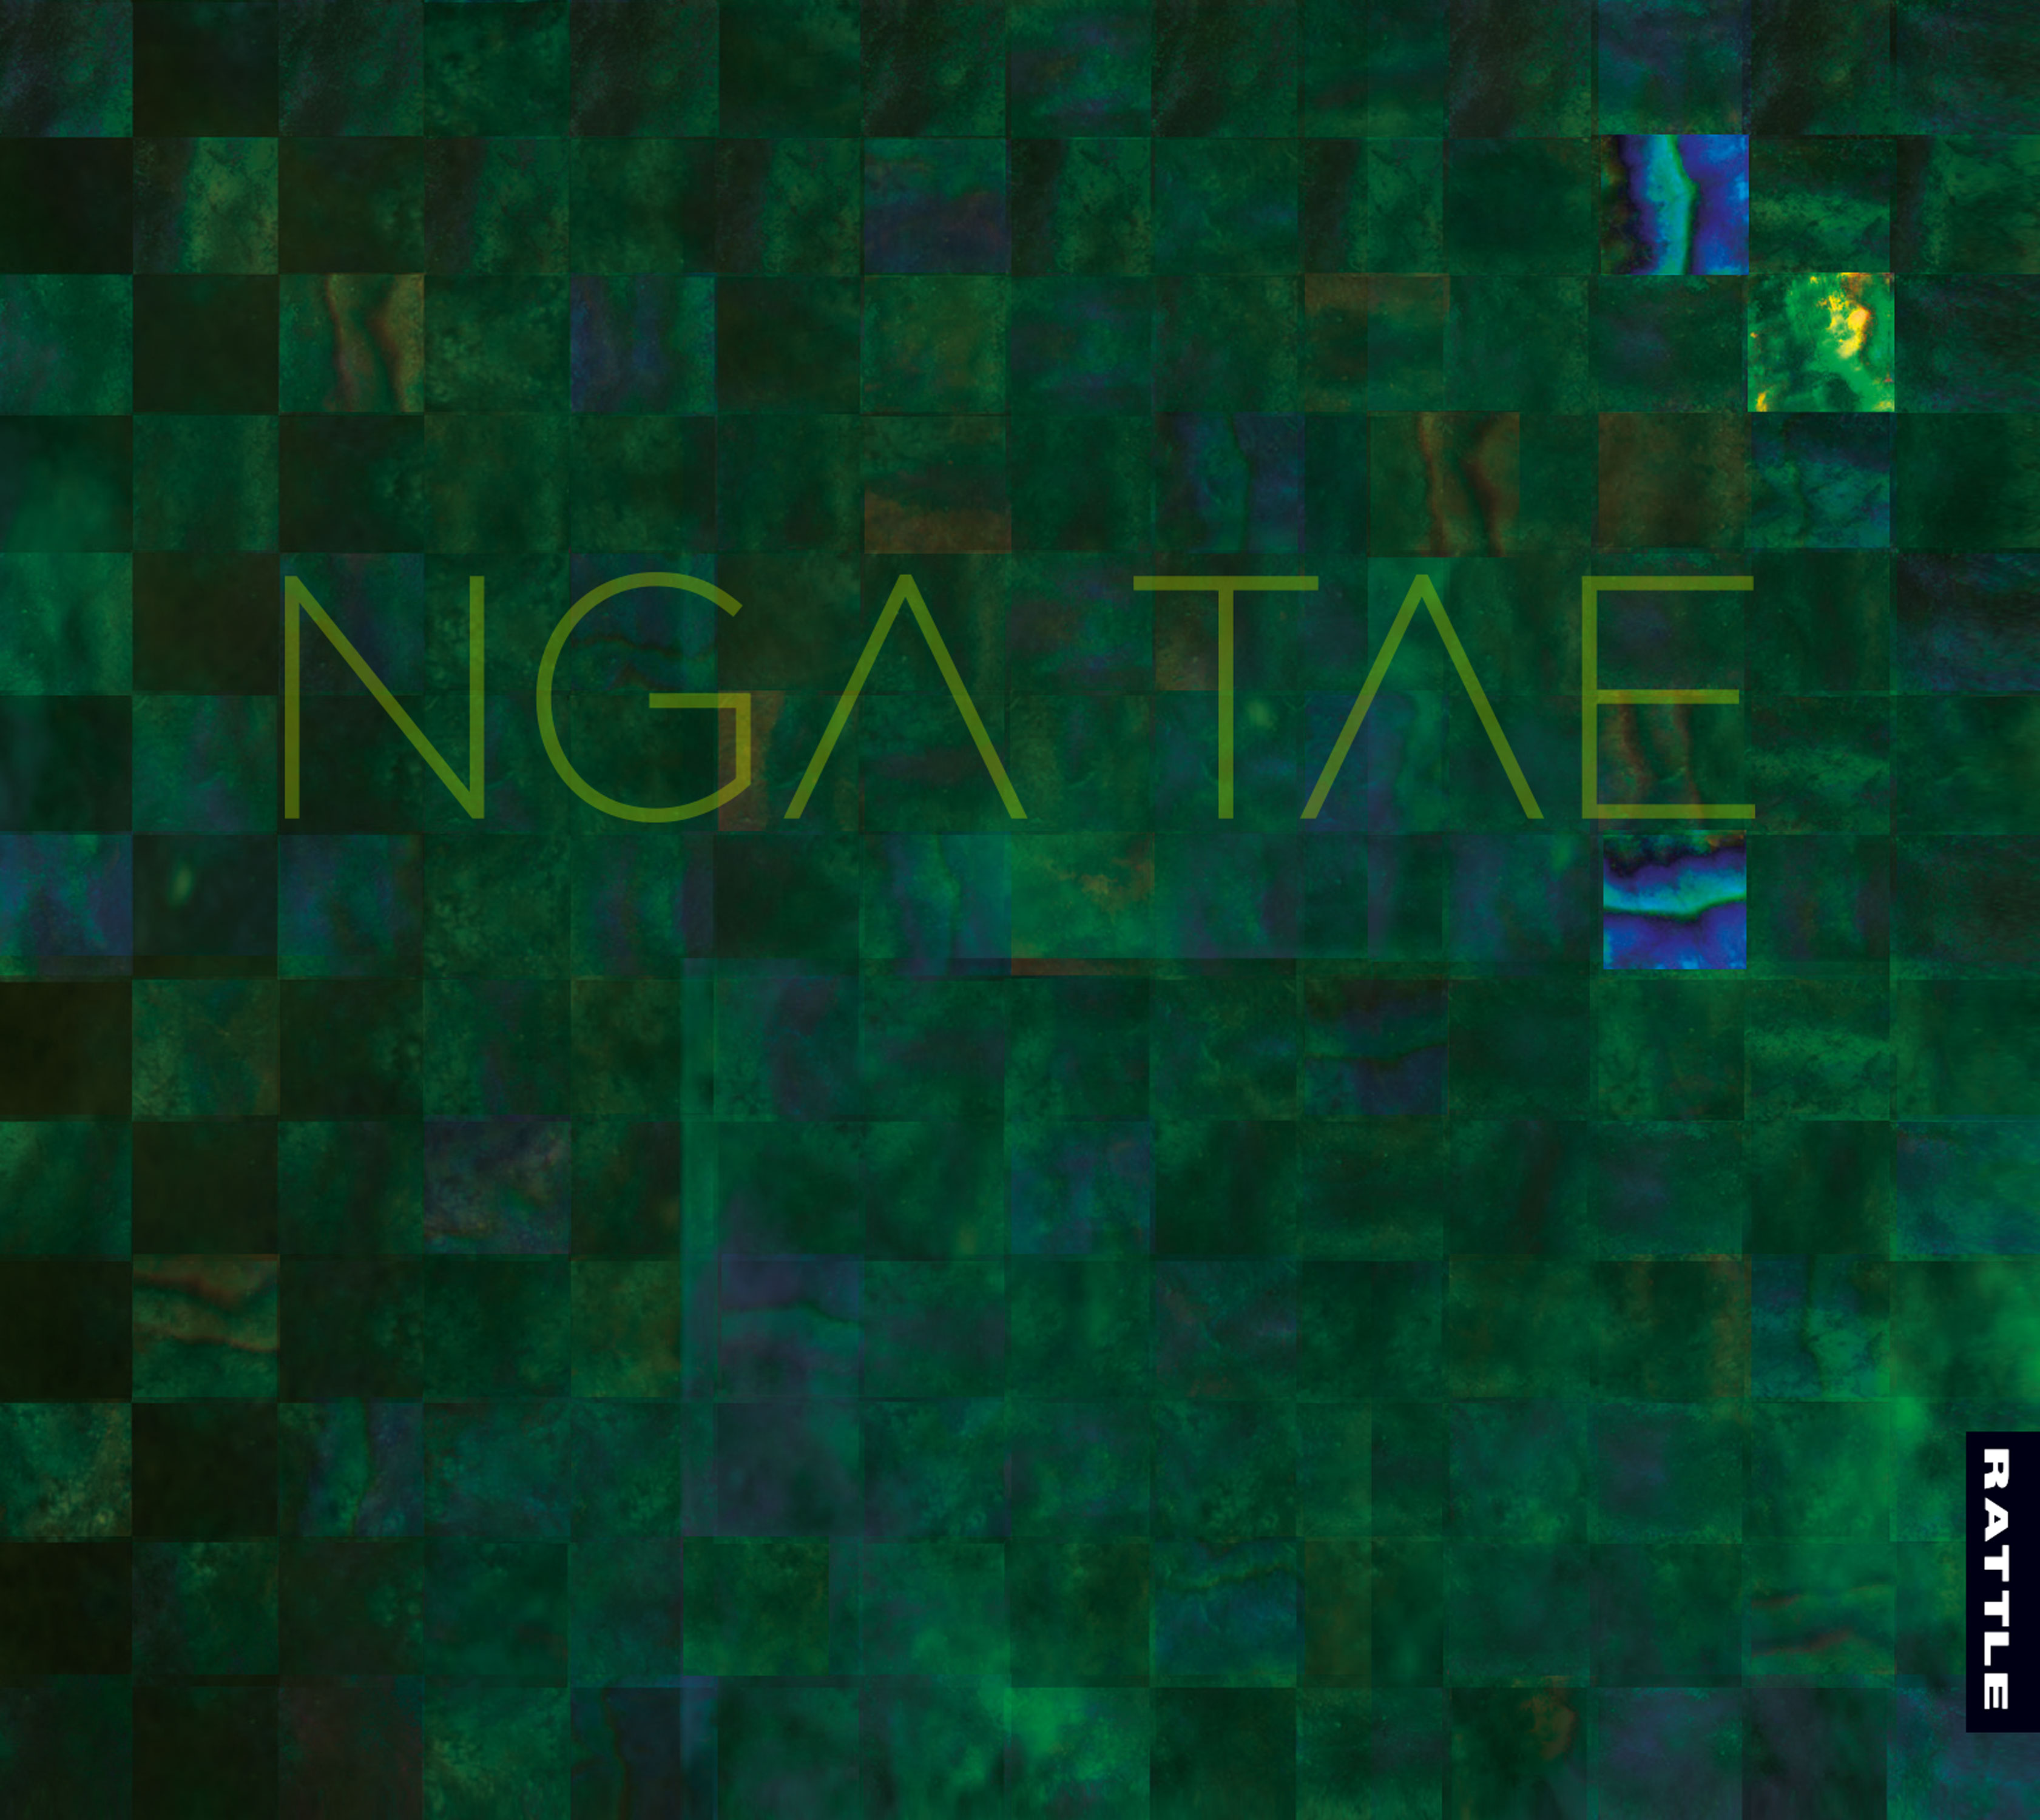 Nunns, Horo, Hotere | Nga Tae - downloadable MP3 ALBUM